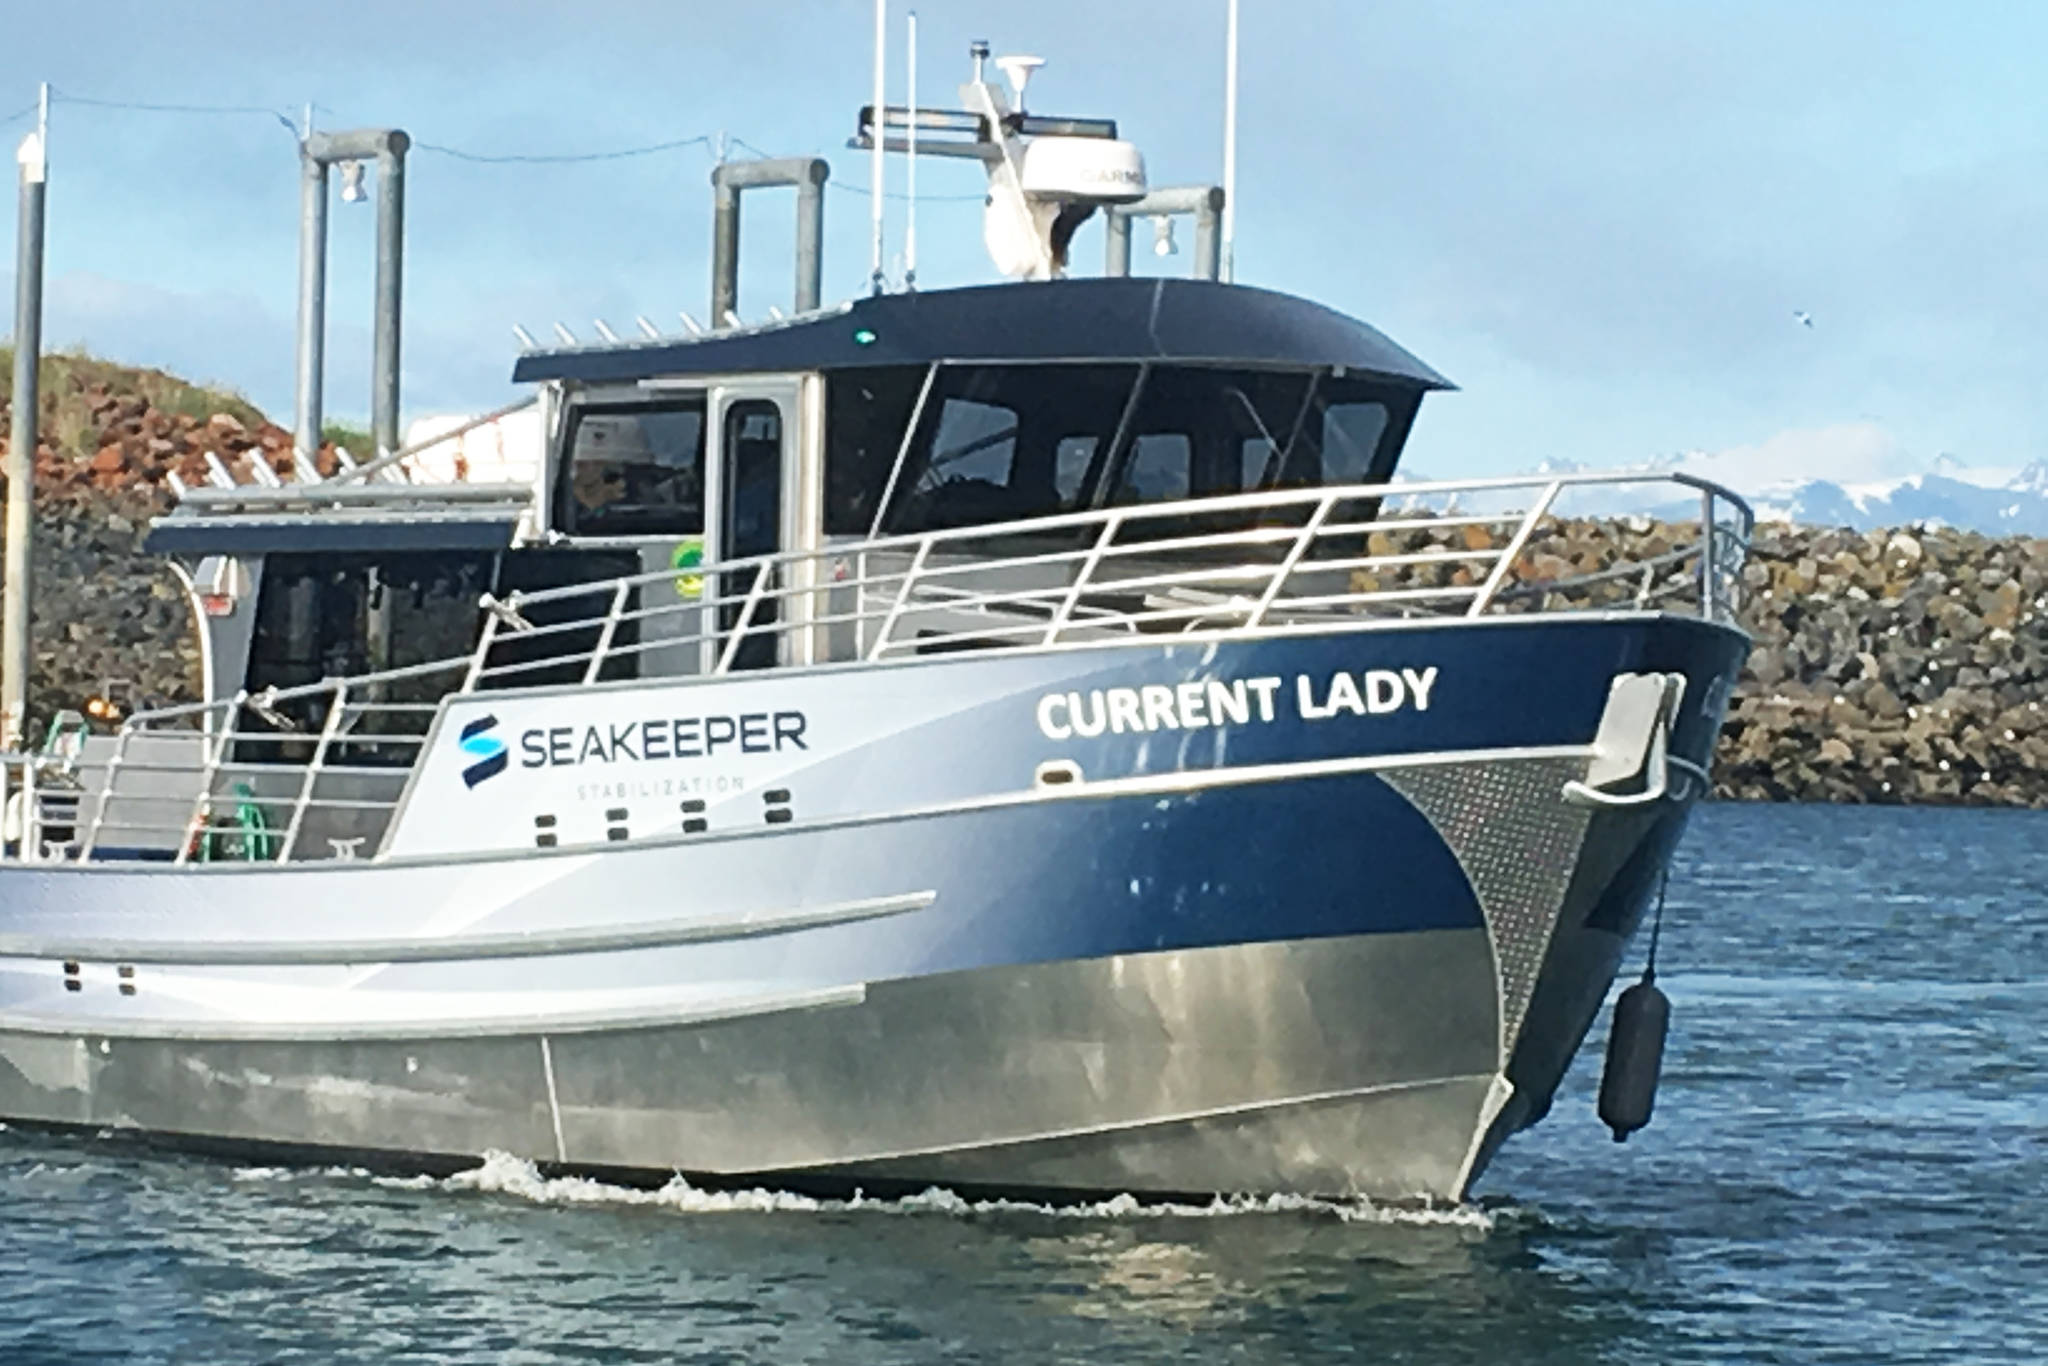 The Current Lady, shown here in this undated photo, is the new boat owned by Dakota Ocean Charters, a new charter business operating in Homer, Alaska. (Photo courtesy Shelly Loos)